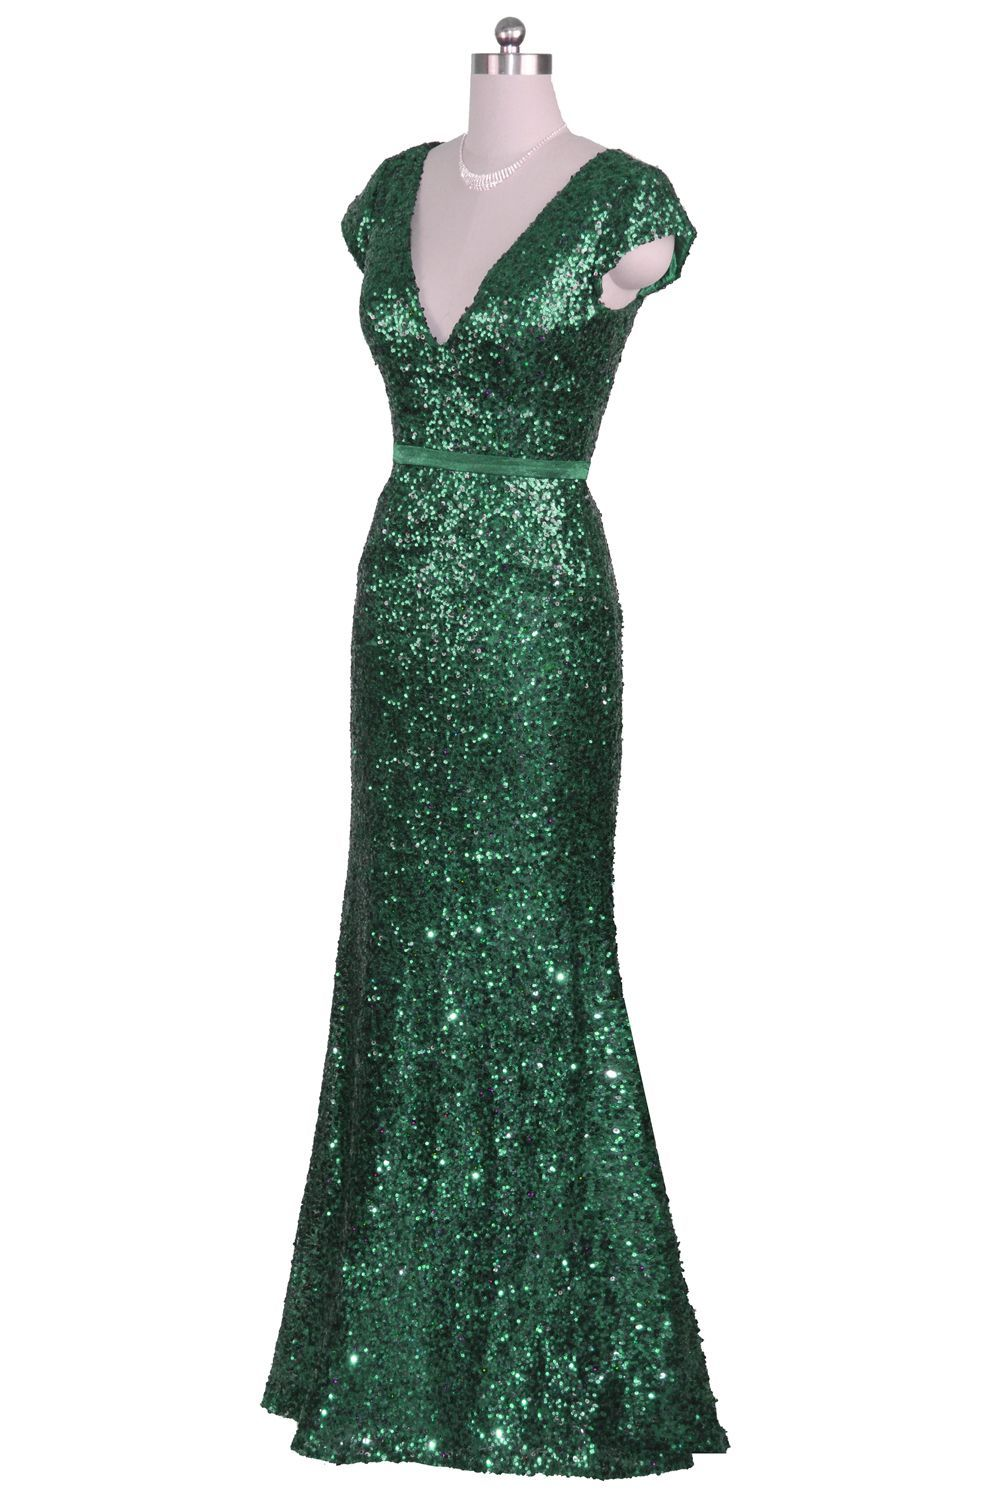 Qpid showgirl pale gold sequin flowing evening dress with cap